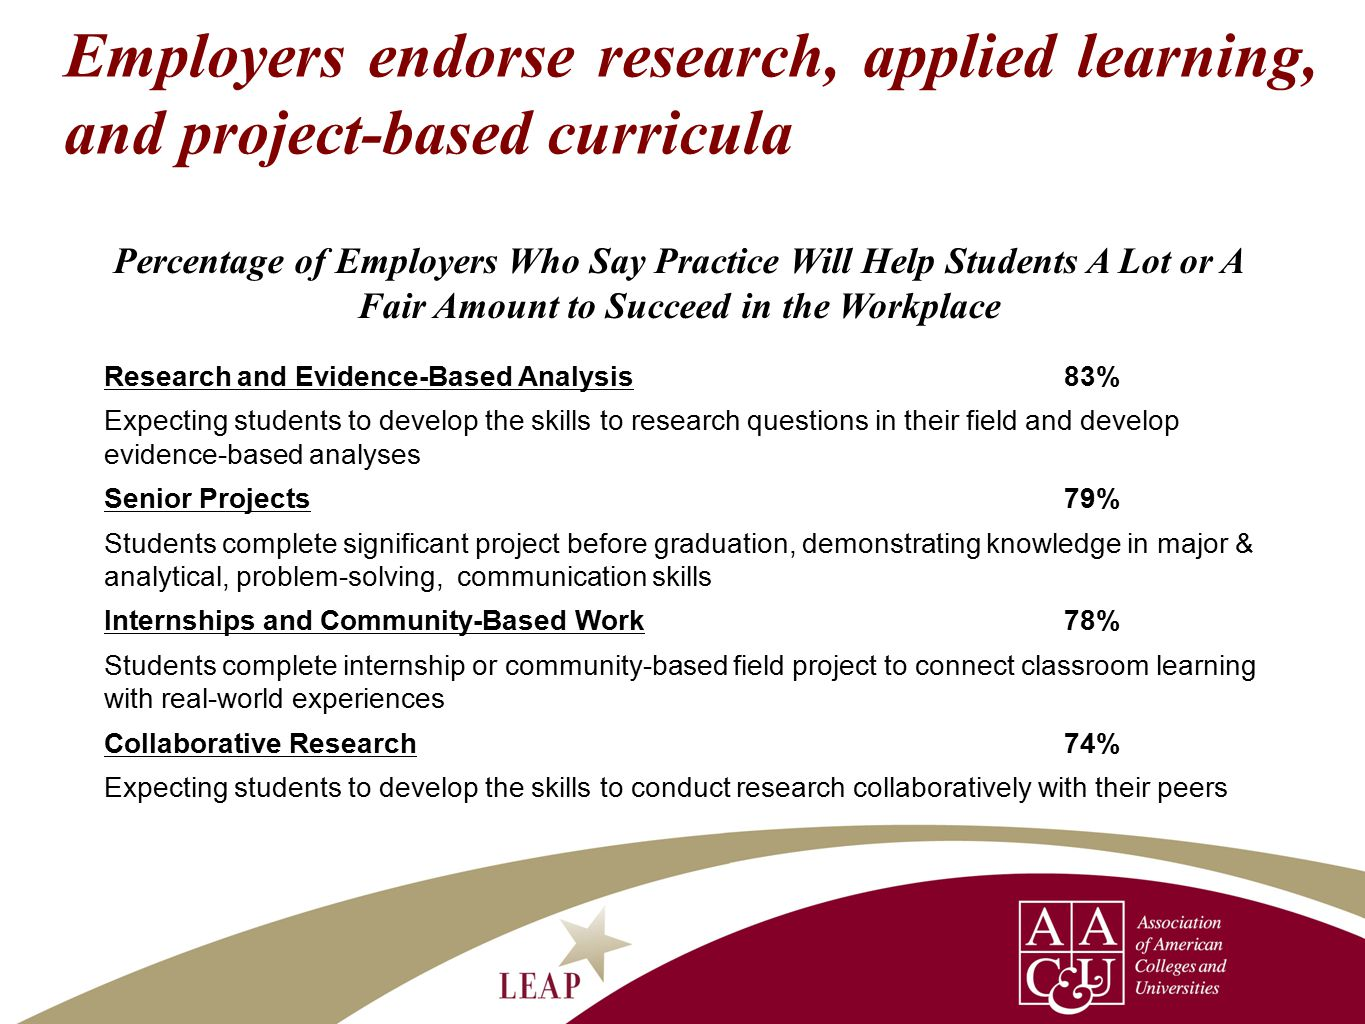 17 Research and Evidence-Based Analysis83% Expecting students to develop the skills to research questions in their field and develop evidence-based analyses Senior Projects79% Students complete significant project before graduation, demonstrating knowledge in major & analytical, problem-solving, communication skills Internships and Community-Based Work78% Students complete internship or community-based field project to connect classroom learning with real-world experiences Collaborative Research74% Expecting students to develop the skills to conduct research collaboratively with their peers Employers endorse research, applied learning, and project-based curricula Percentage of Employers Who Say Practice Will Help Students A Lot or A Fair Amount to Succeed in the Workplace